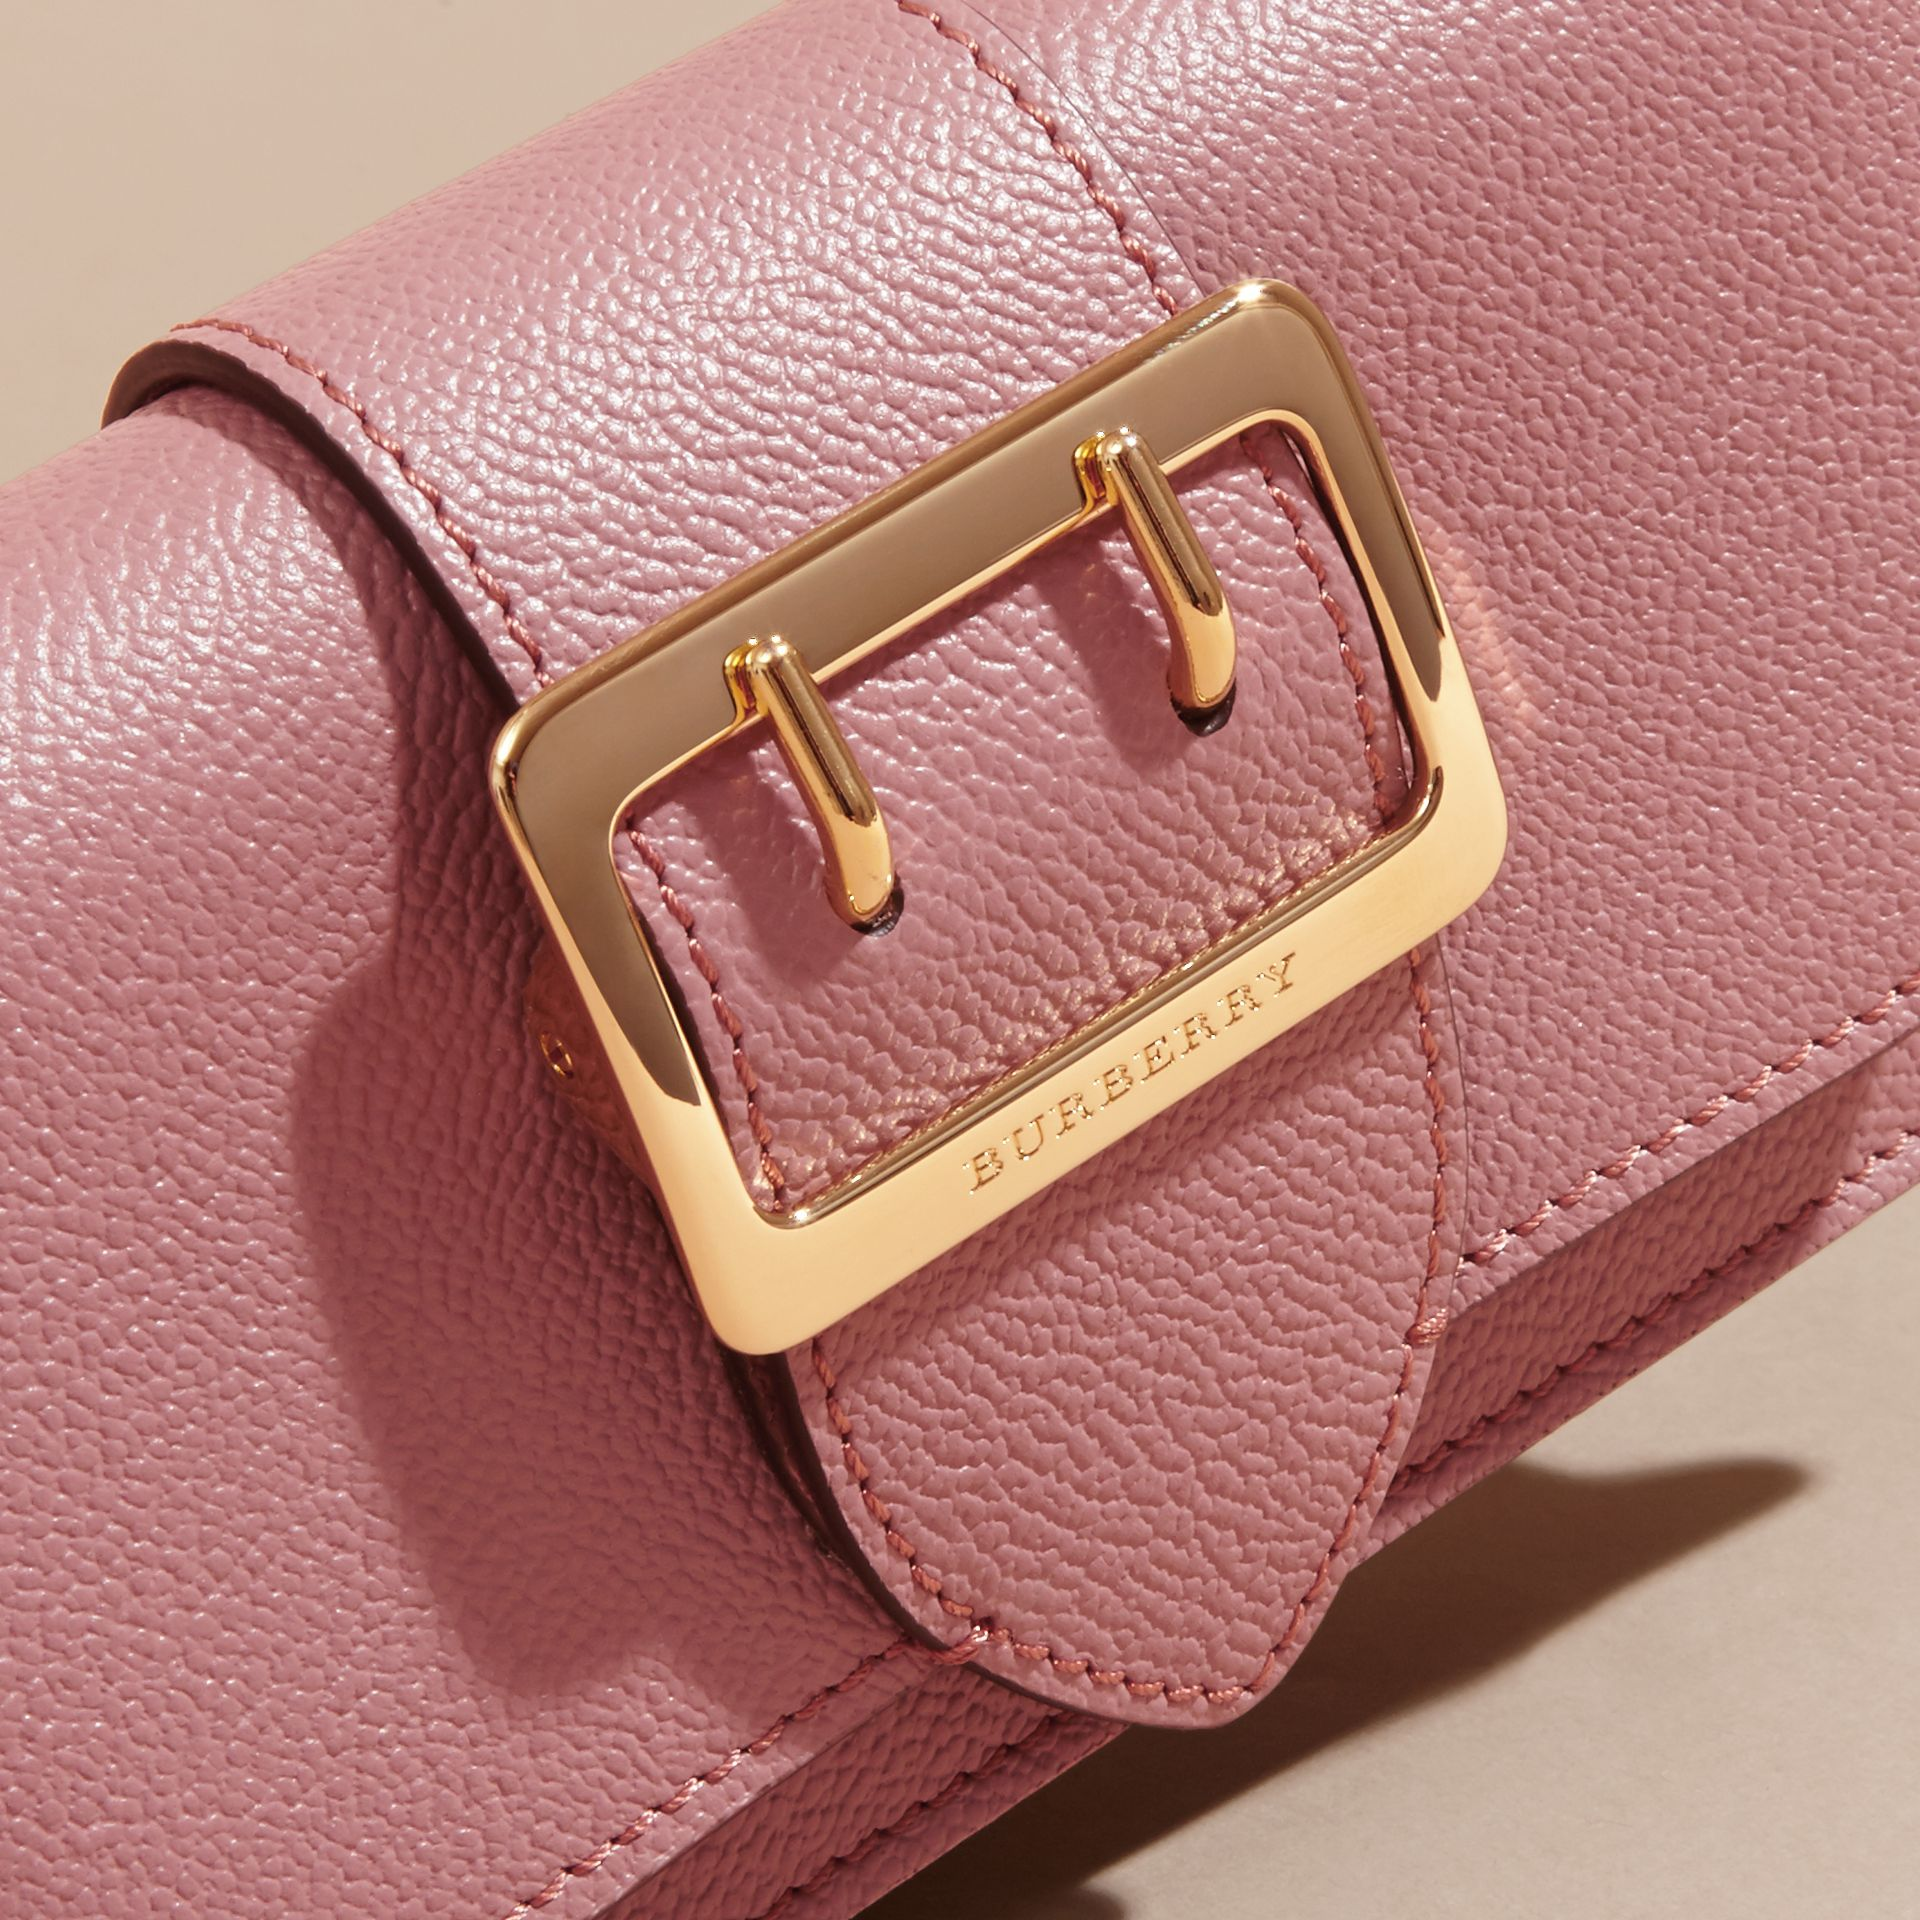 Borsa The Buckle mini in pelle a grana (Rosa Polvere) - Donna | Burberry - immagine della galleria 2